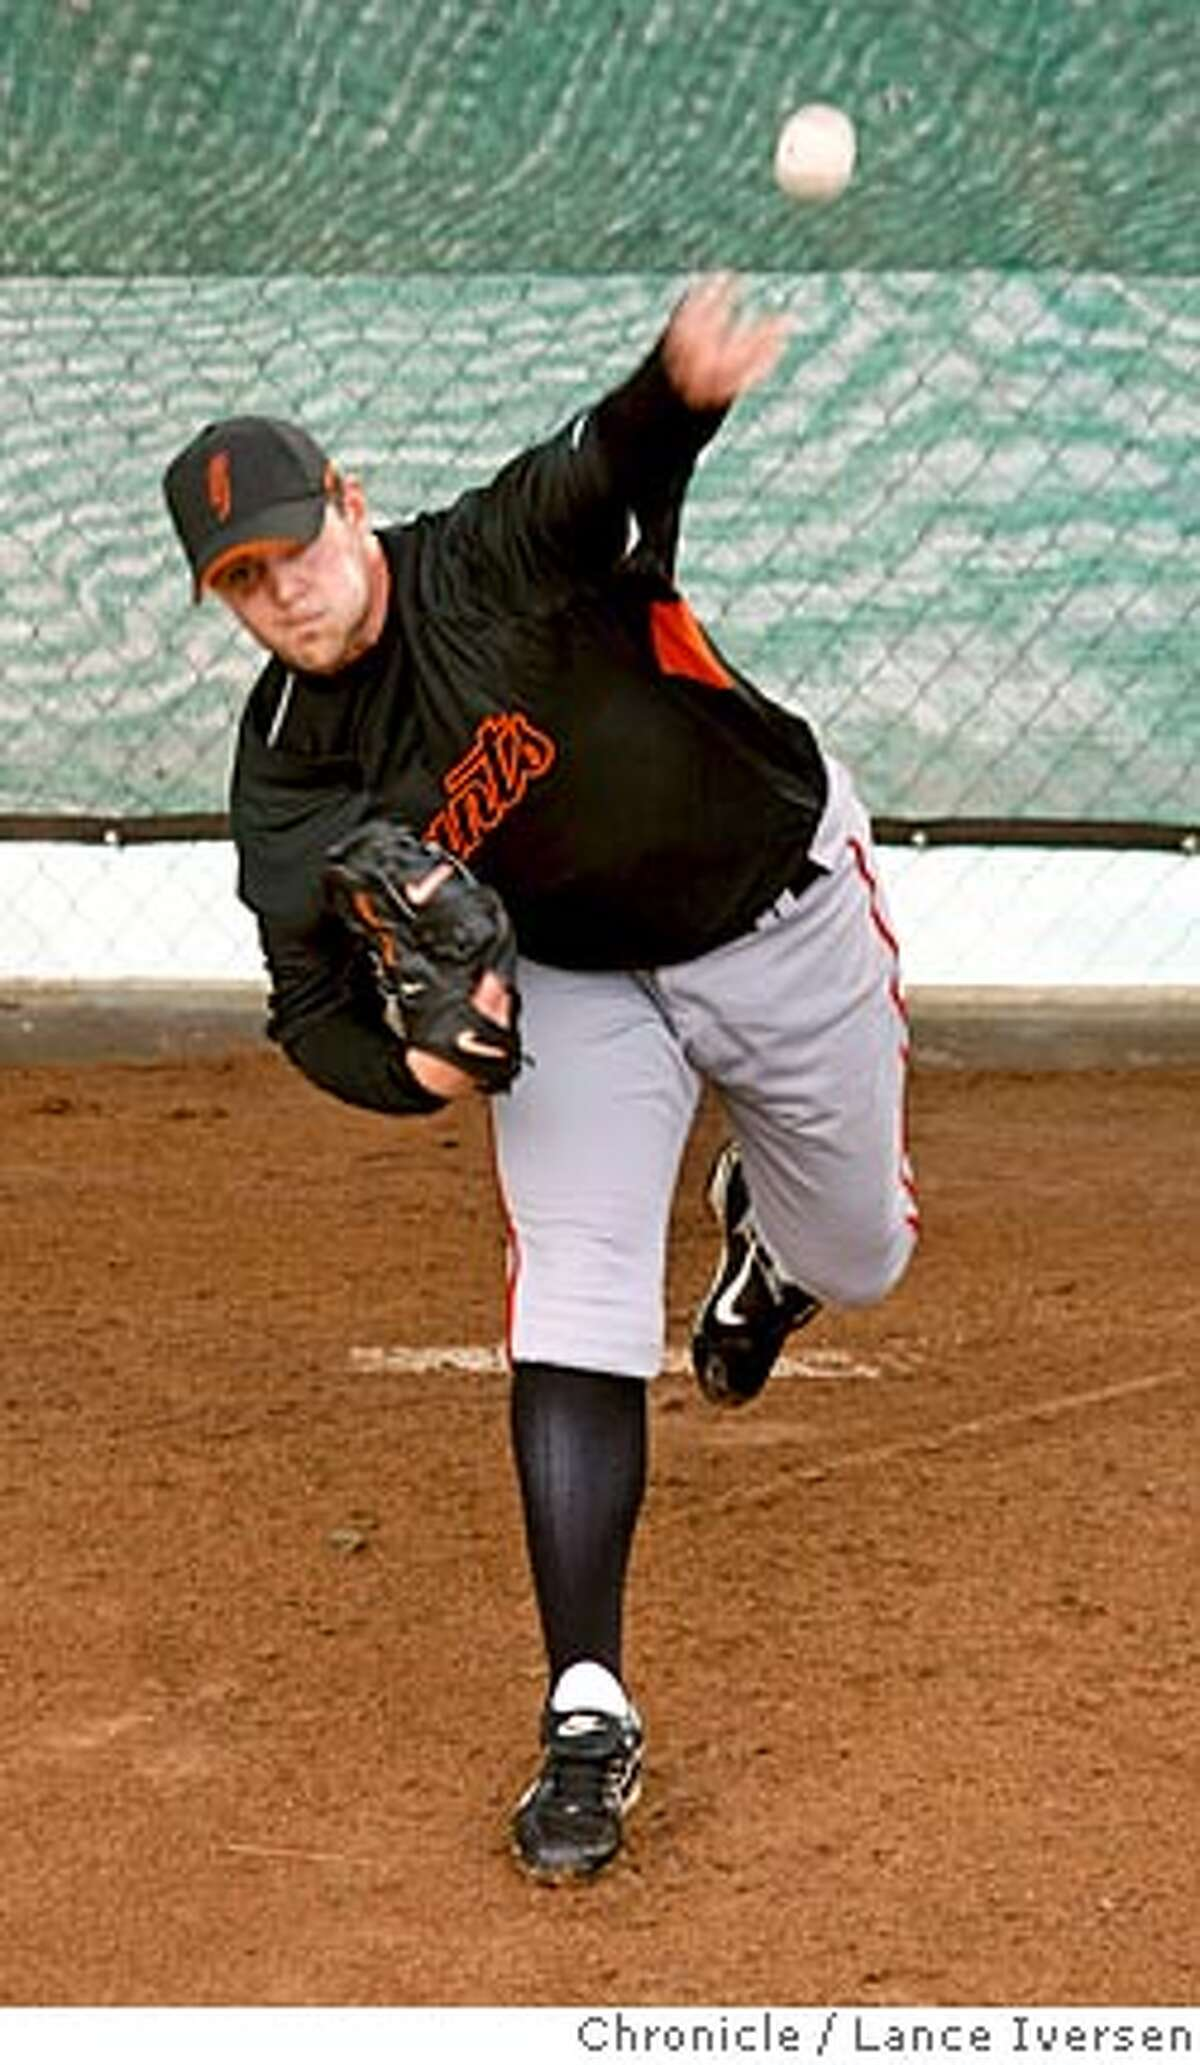 San Francisco Giants pitcher #51 Noah Lowry workout in the bullpen Friday at Scottsdale Stadium. By Lance Iversen/The San Francisco Chronicle Ran on: 02-17-2008 BARRY ZITO Age: 29 Career record: 113-76 ERA: 3.67 Ran on: 02-17-2008 BARRY ZITO Age: 29 Career record: 113-76 ERA: 3.67